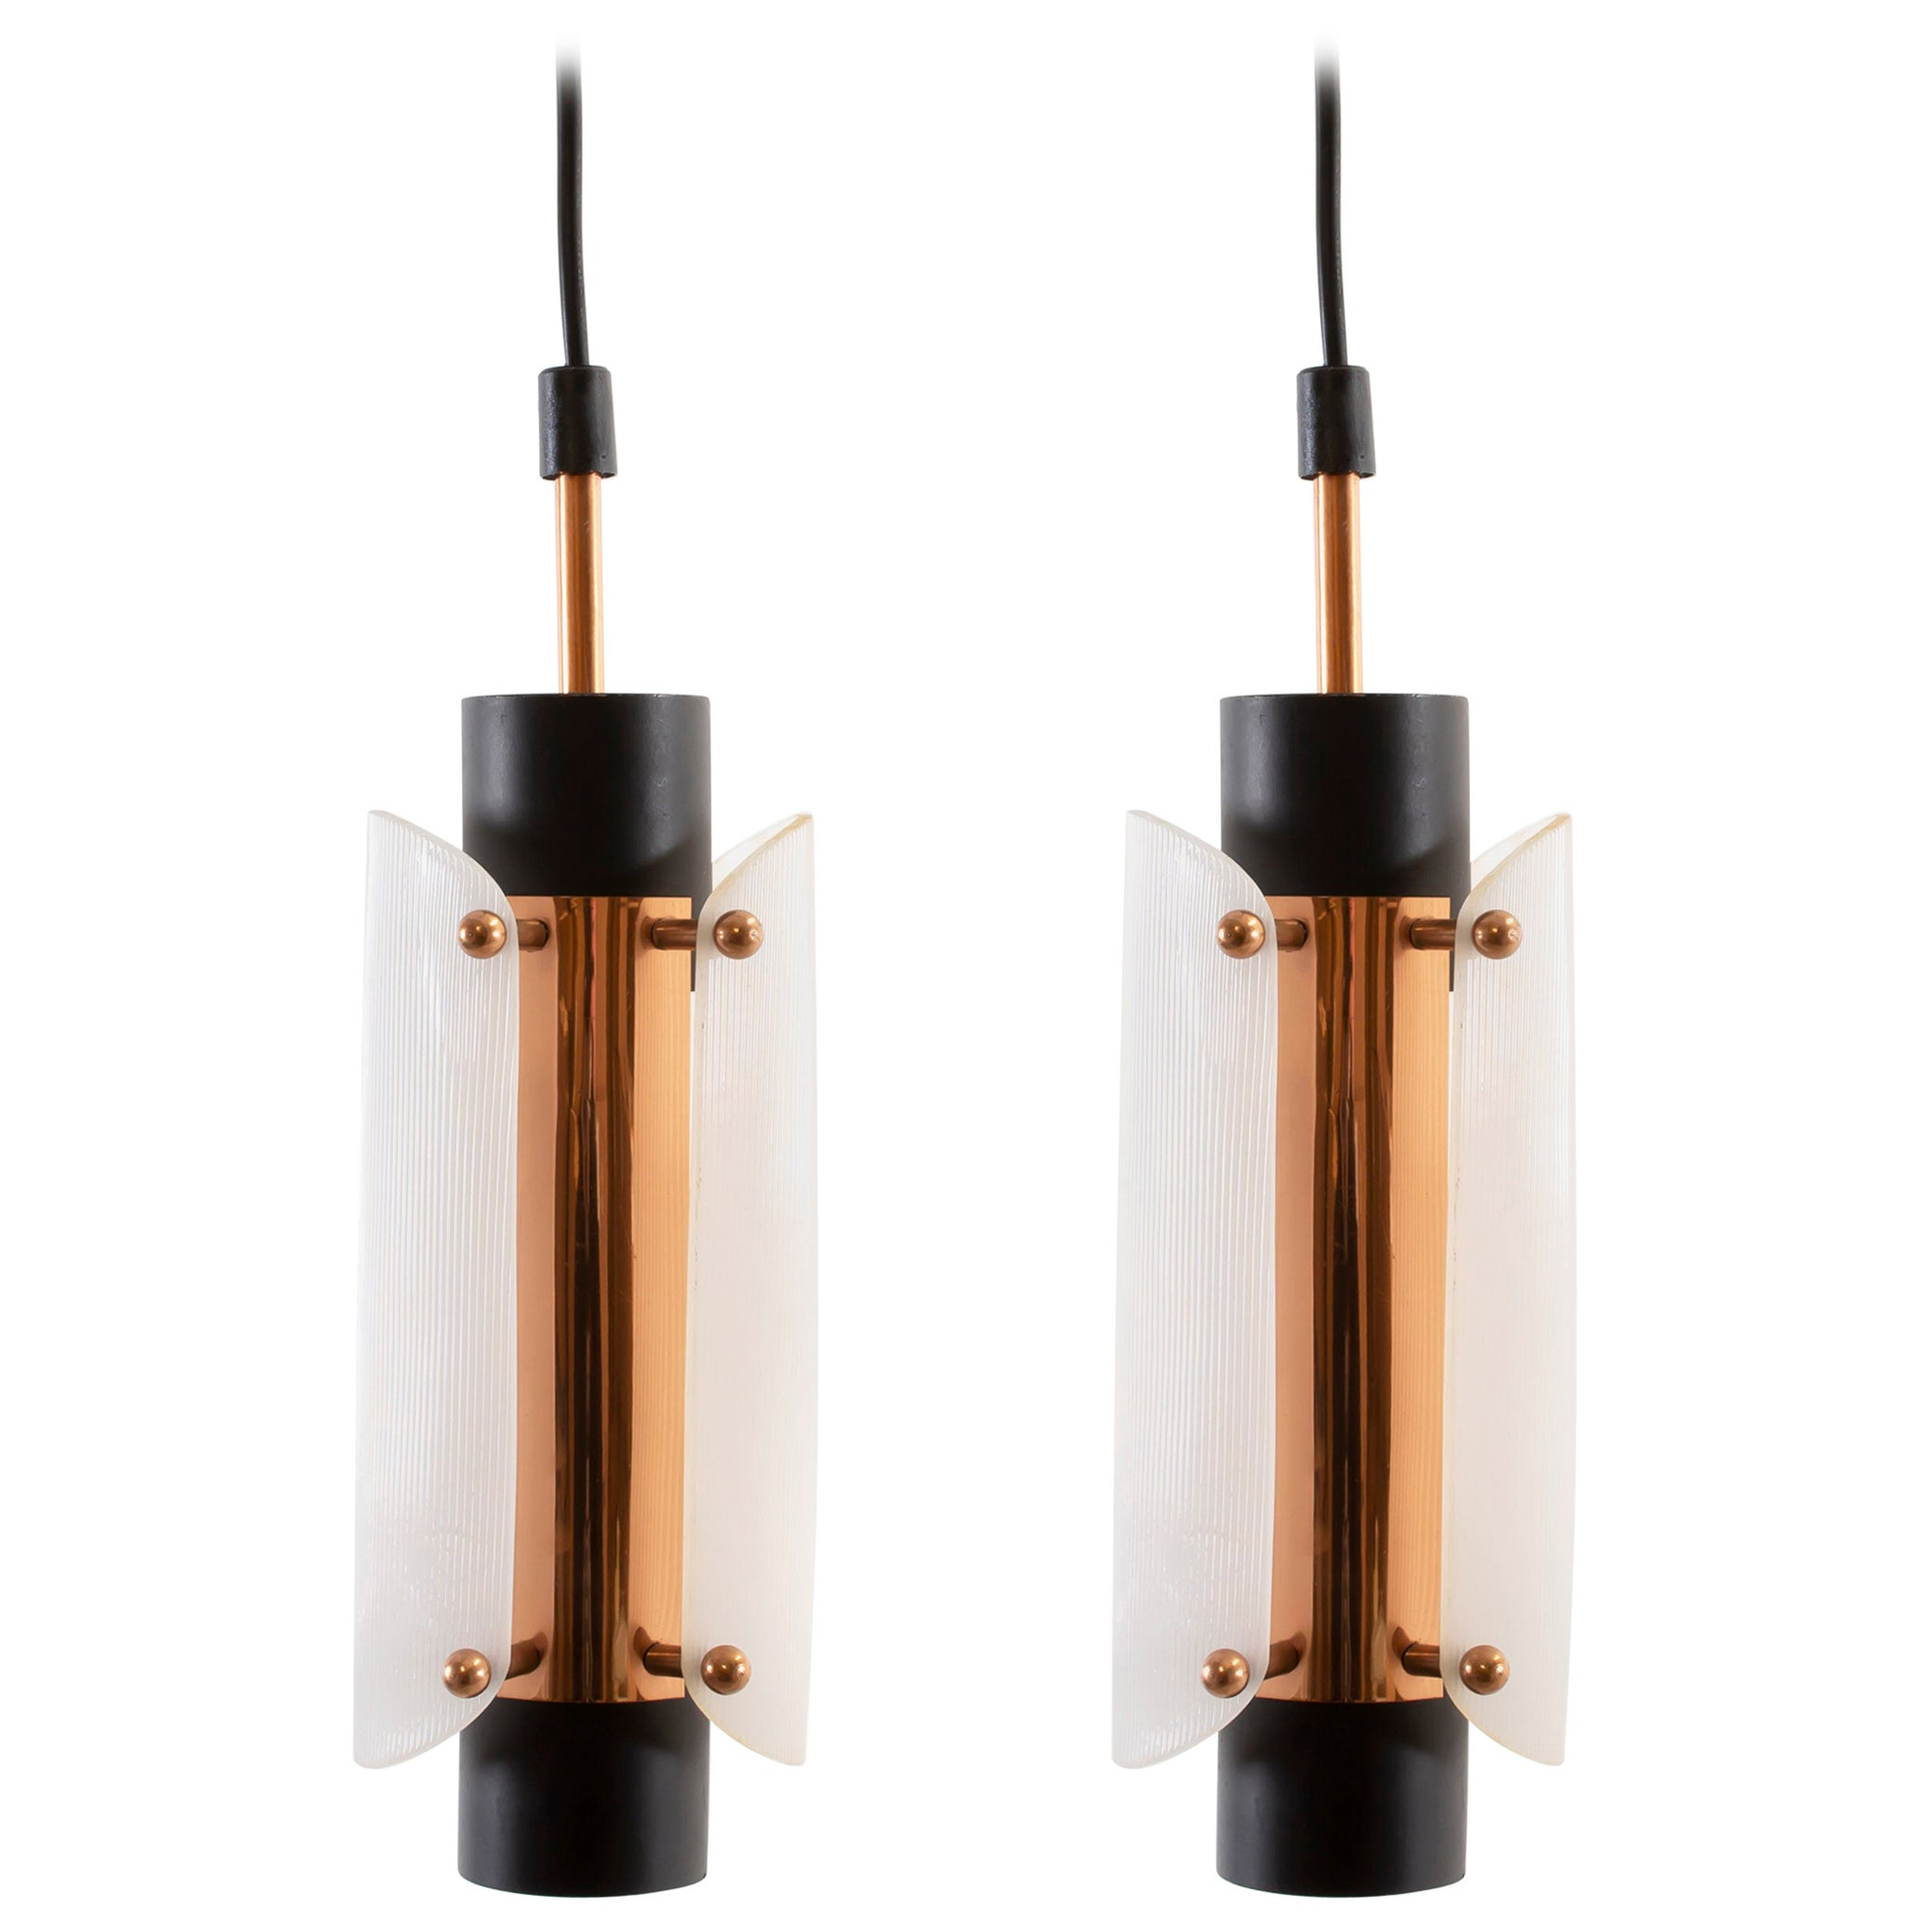 Pair of Midcentury Ceiling Pendants, Norway, 1960s